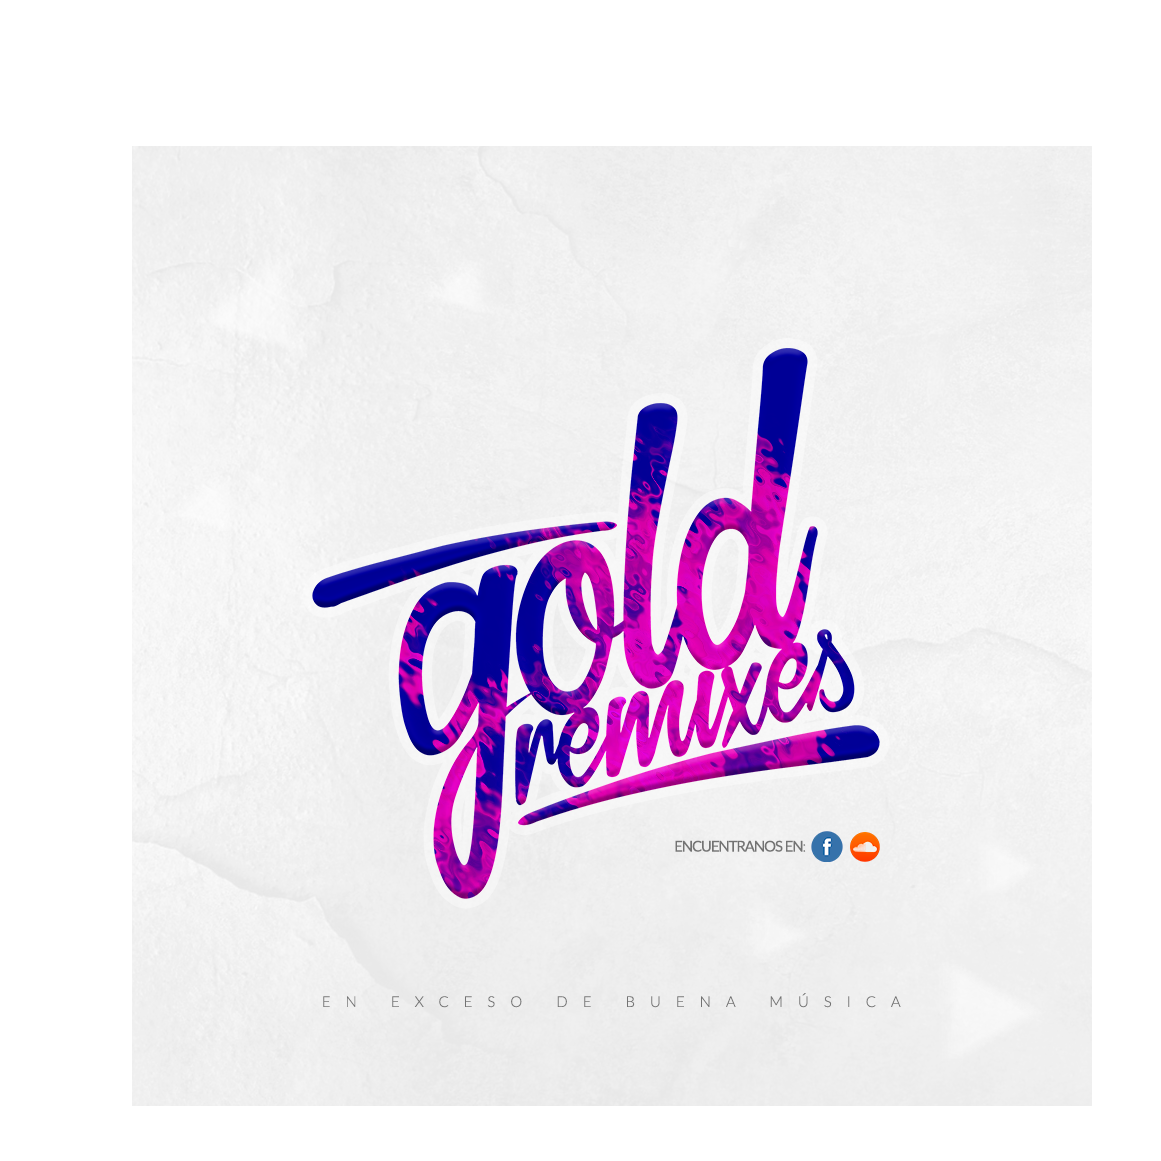 goldremixes